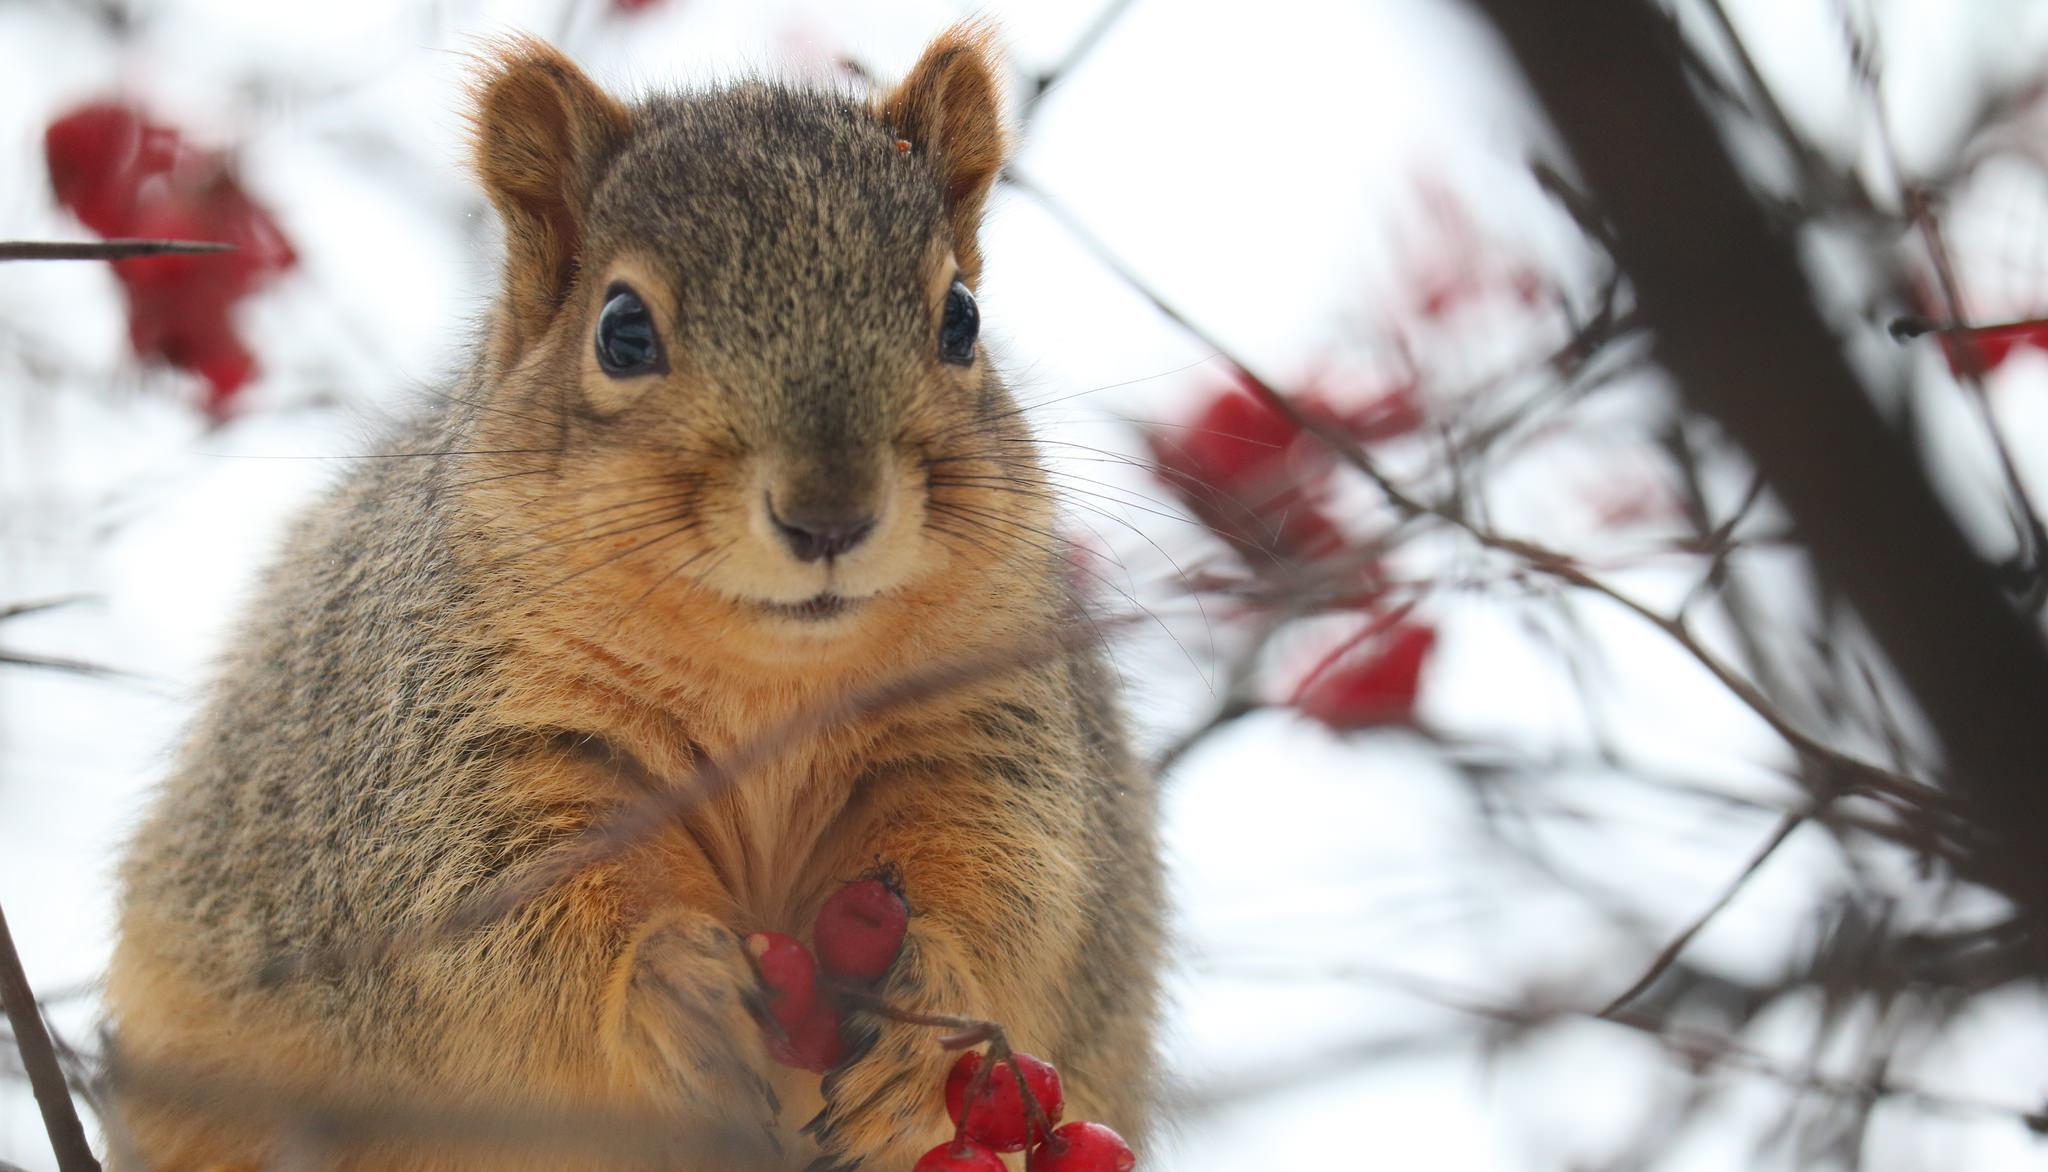 A squirrel sitting in a tree and holding berries in its paws